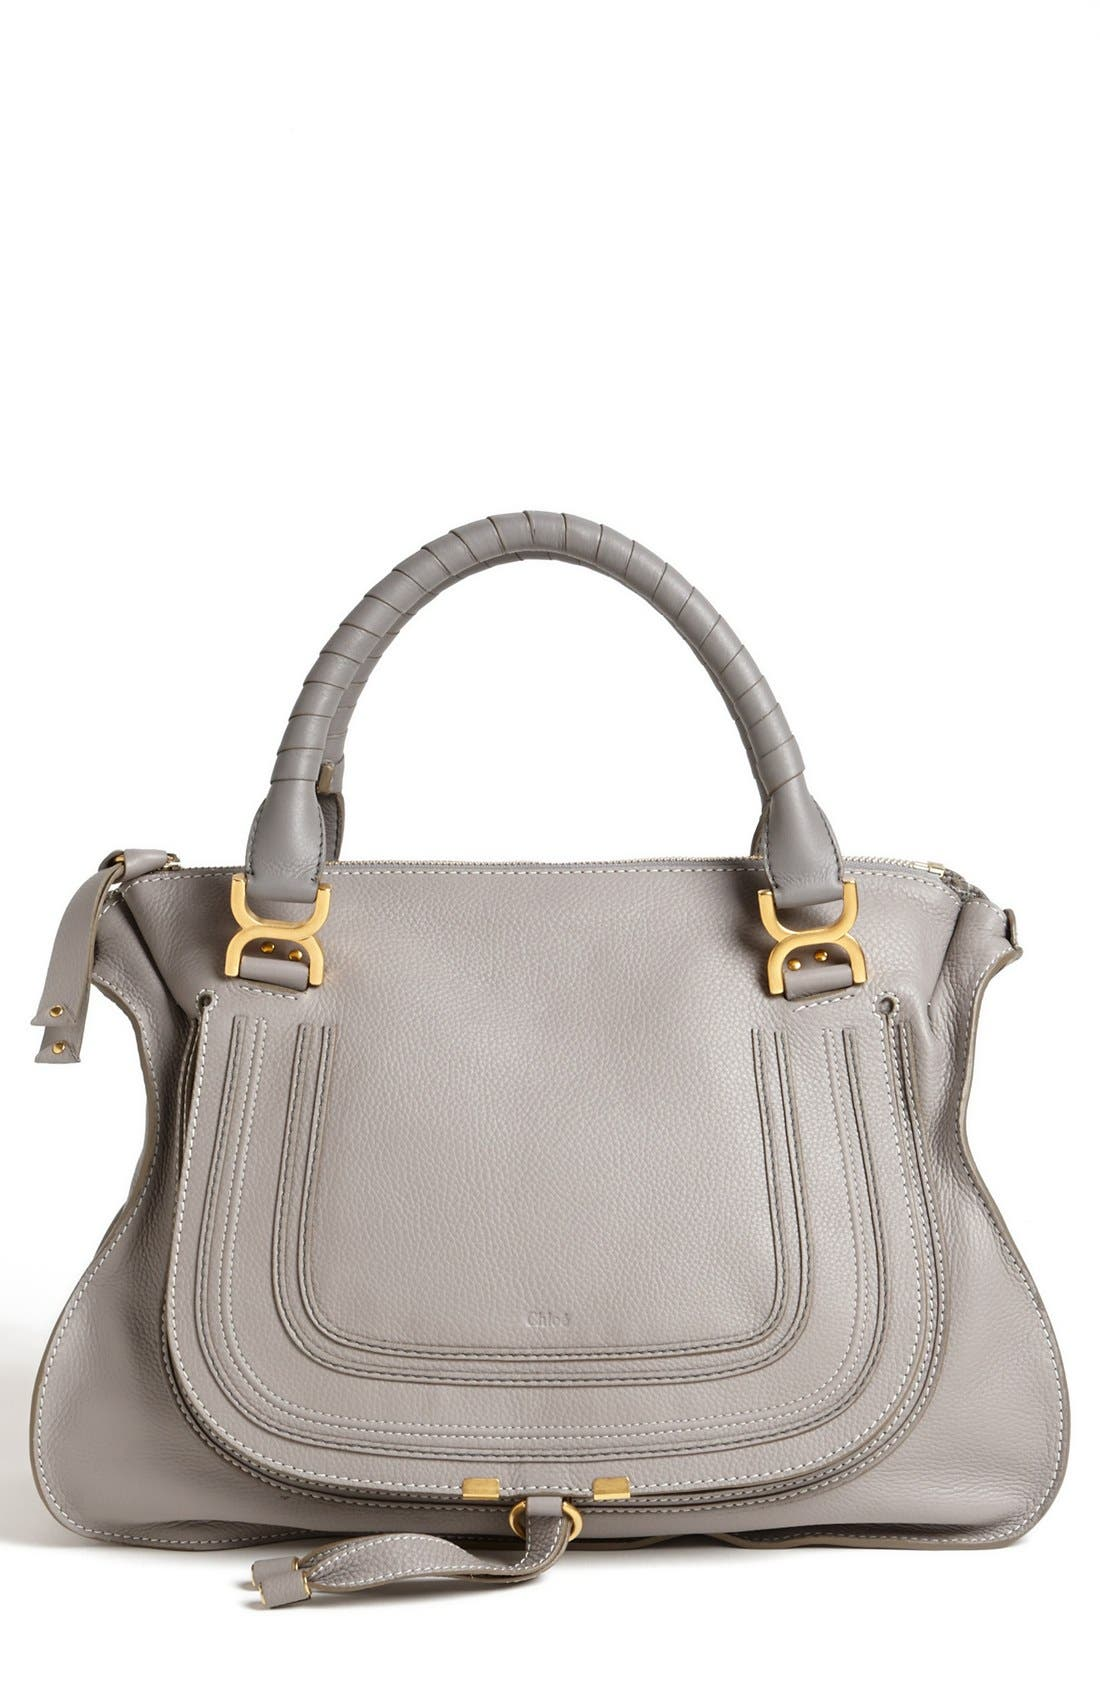 Chloé Large Marcie Leather Satchel